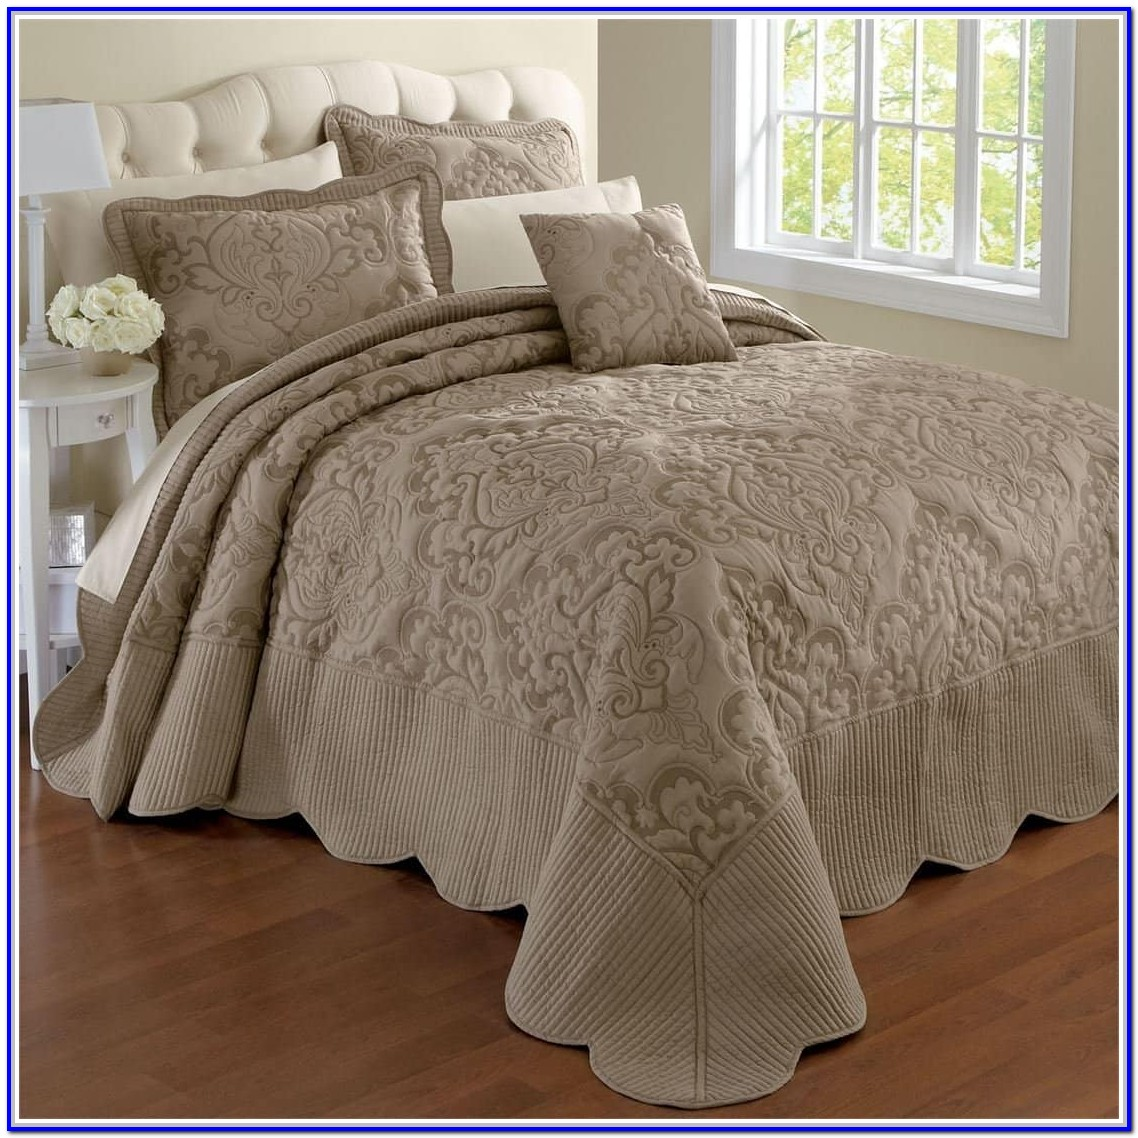 King Size Bed Comforter Dimensions